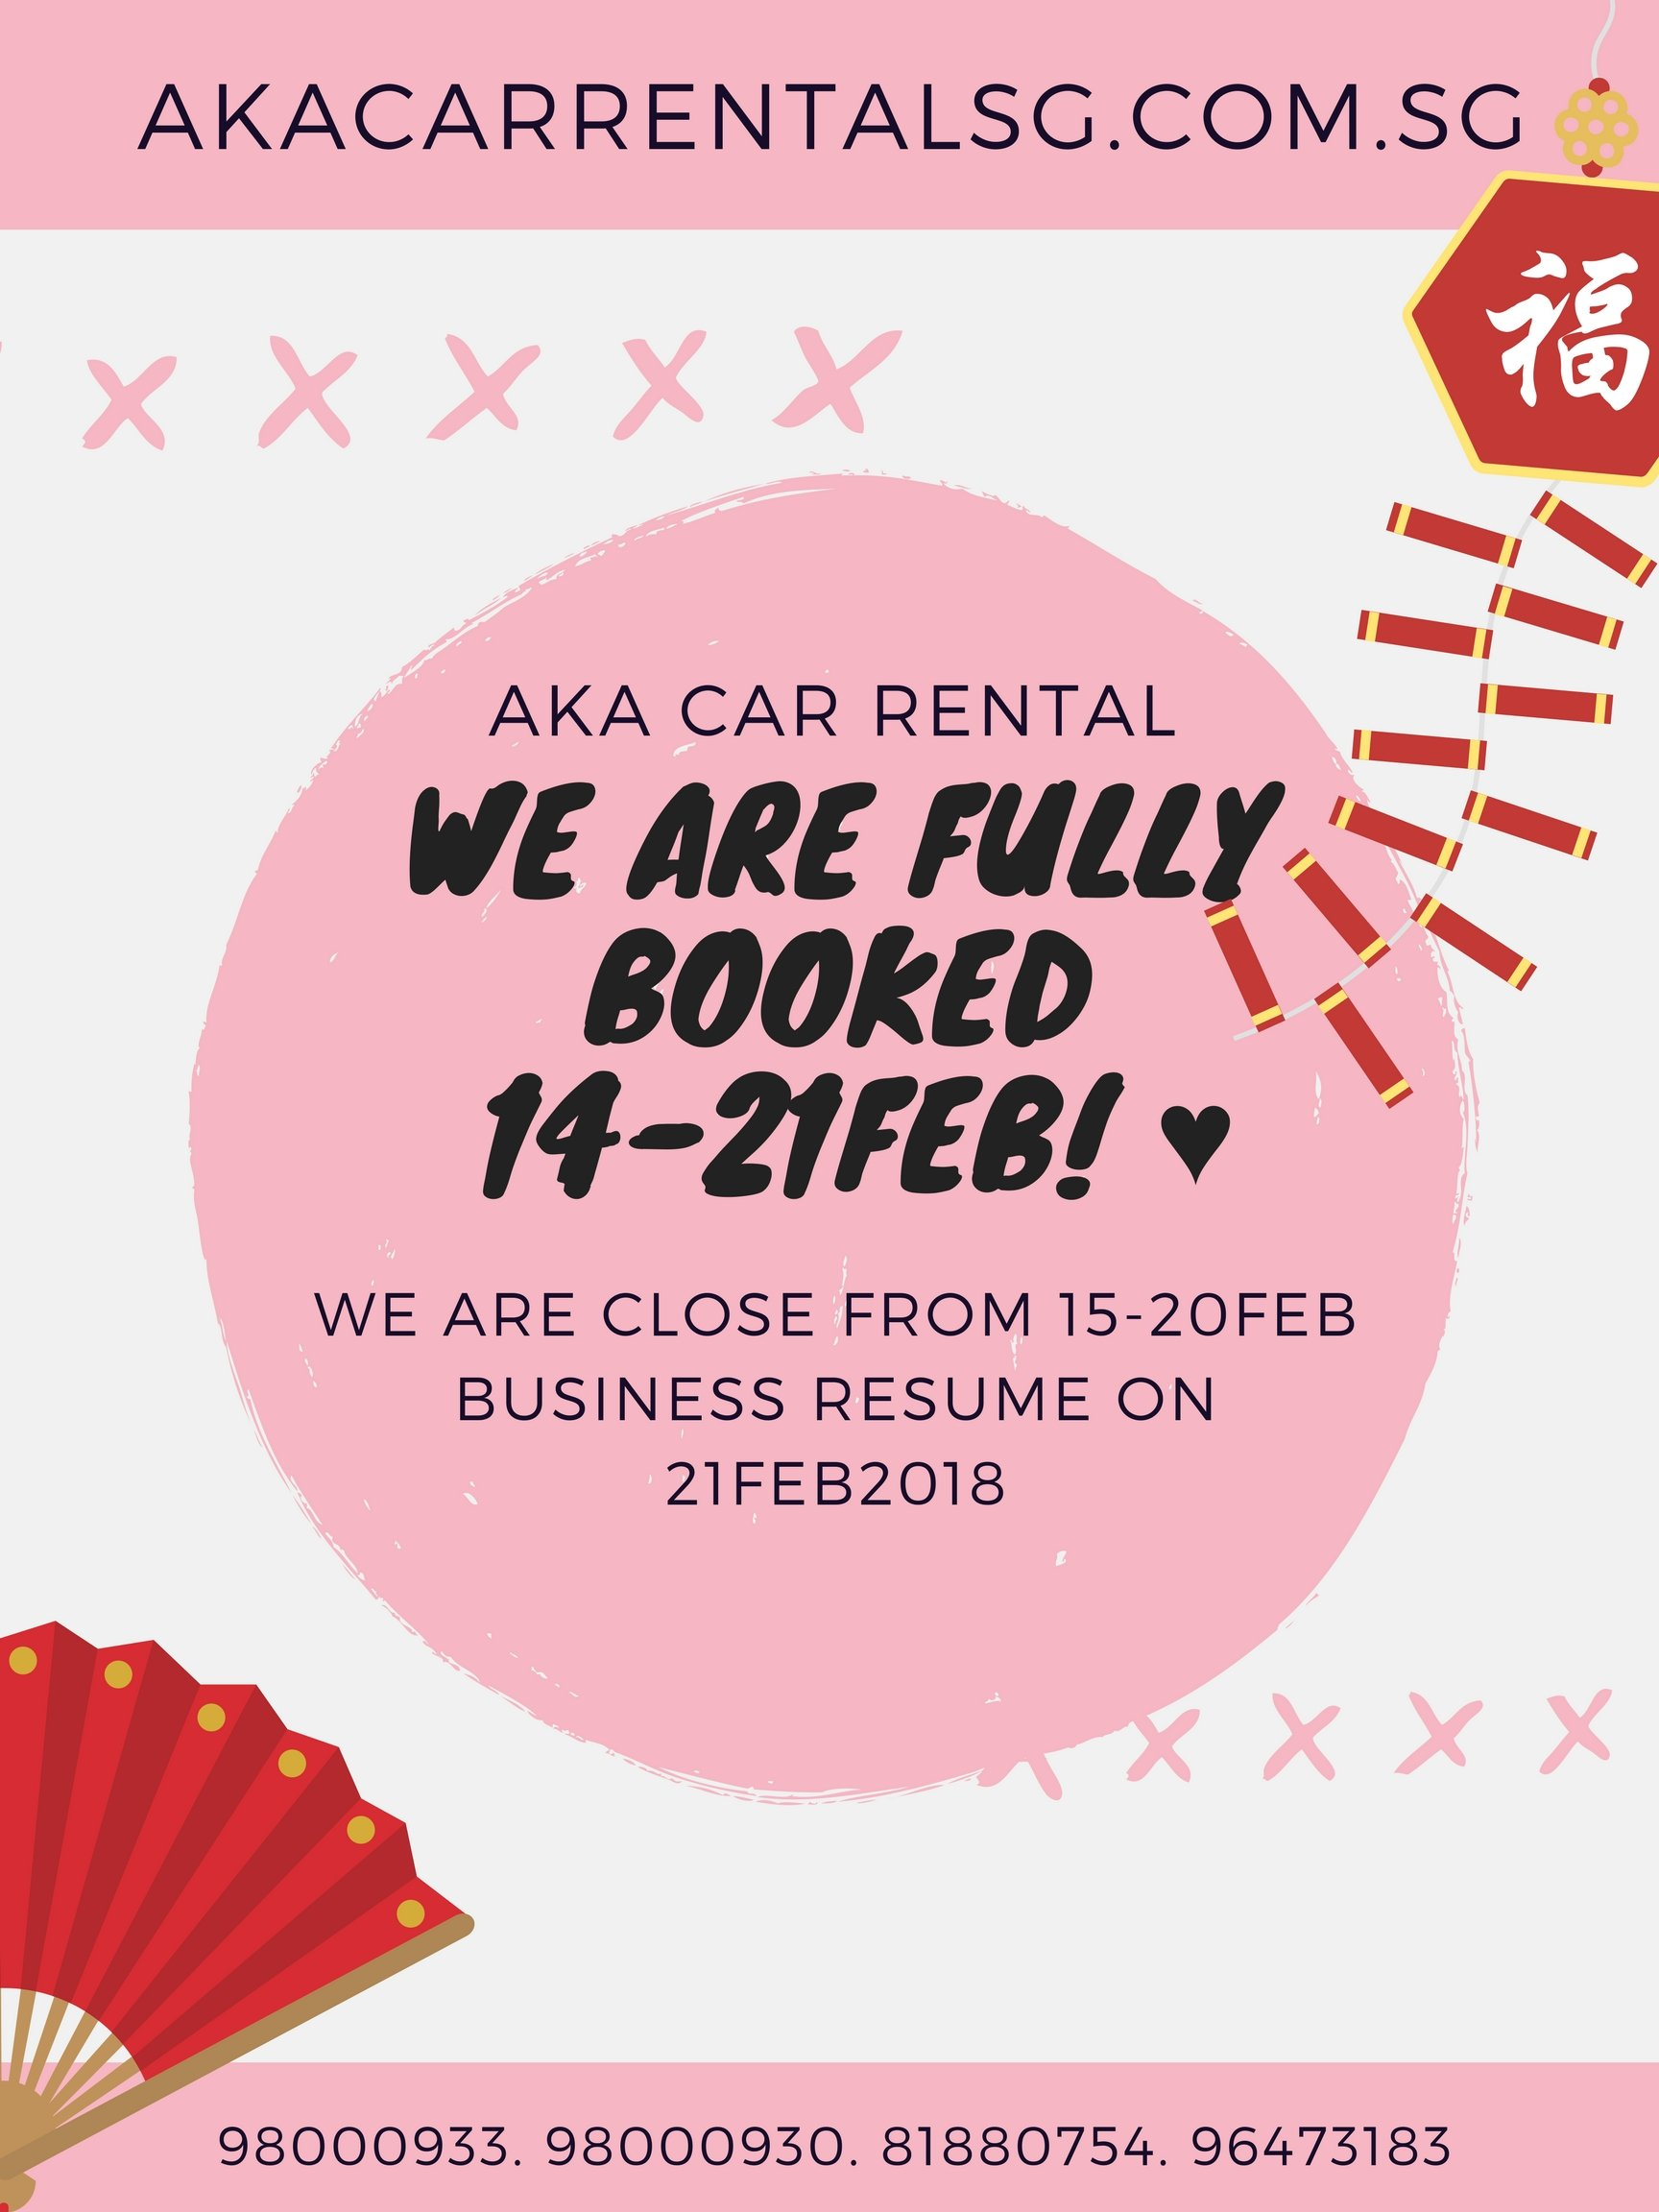 car rental singapore p-plate, cheap car rental in singapore, car rental singapore, p-plate car rental